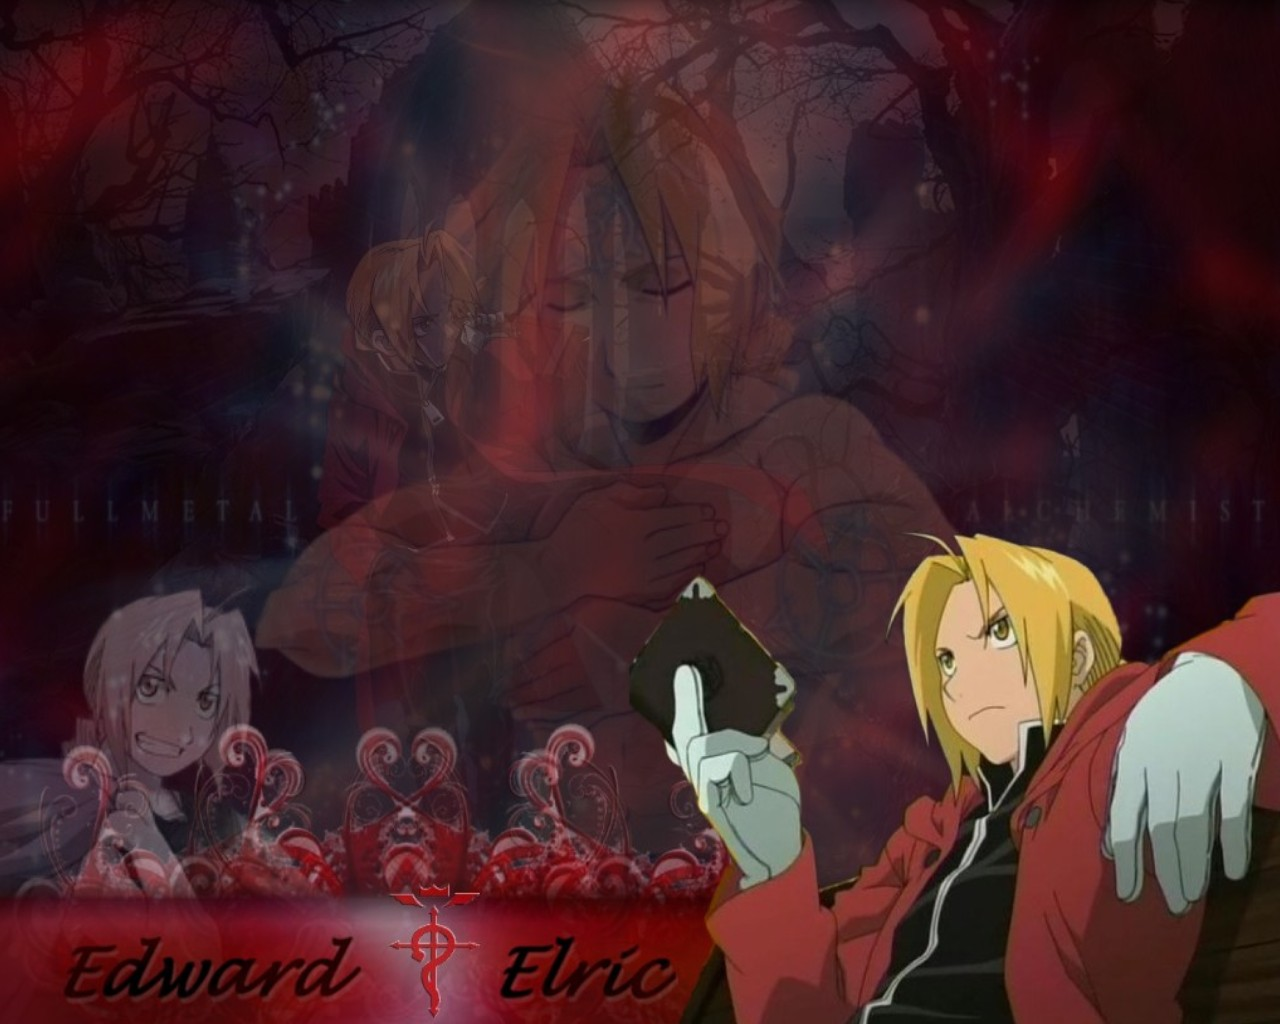 Edward Elric Fullmetal Alchemist wallpaper Anime Forums Anime News 1280x1024